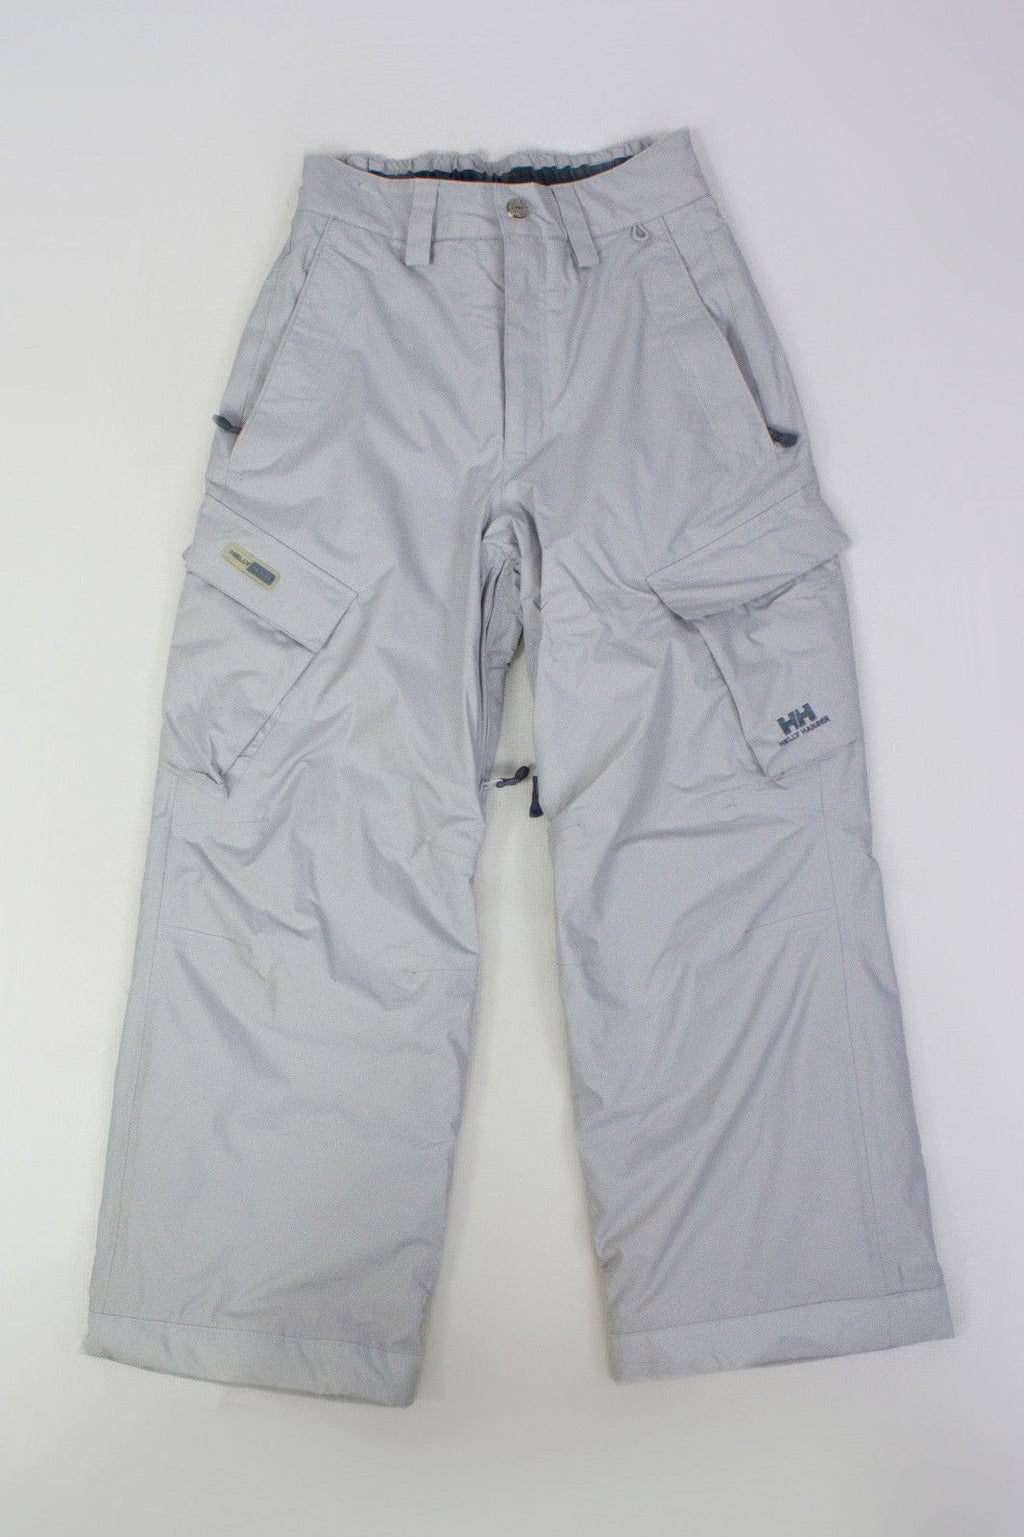 HELLY HANSEN Ski/Snowboard Pants, Light Gray Women XS - secondfirst